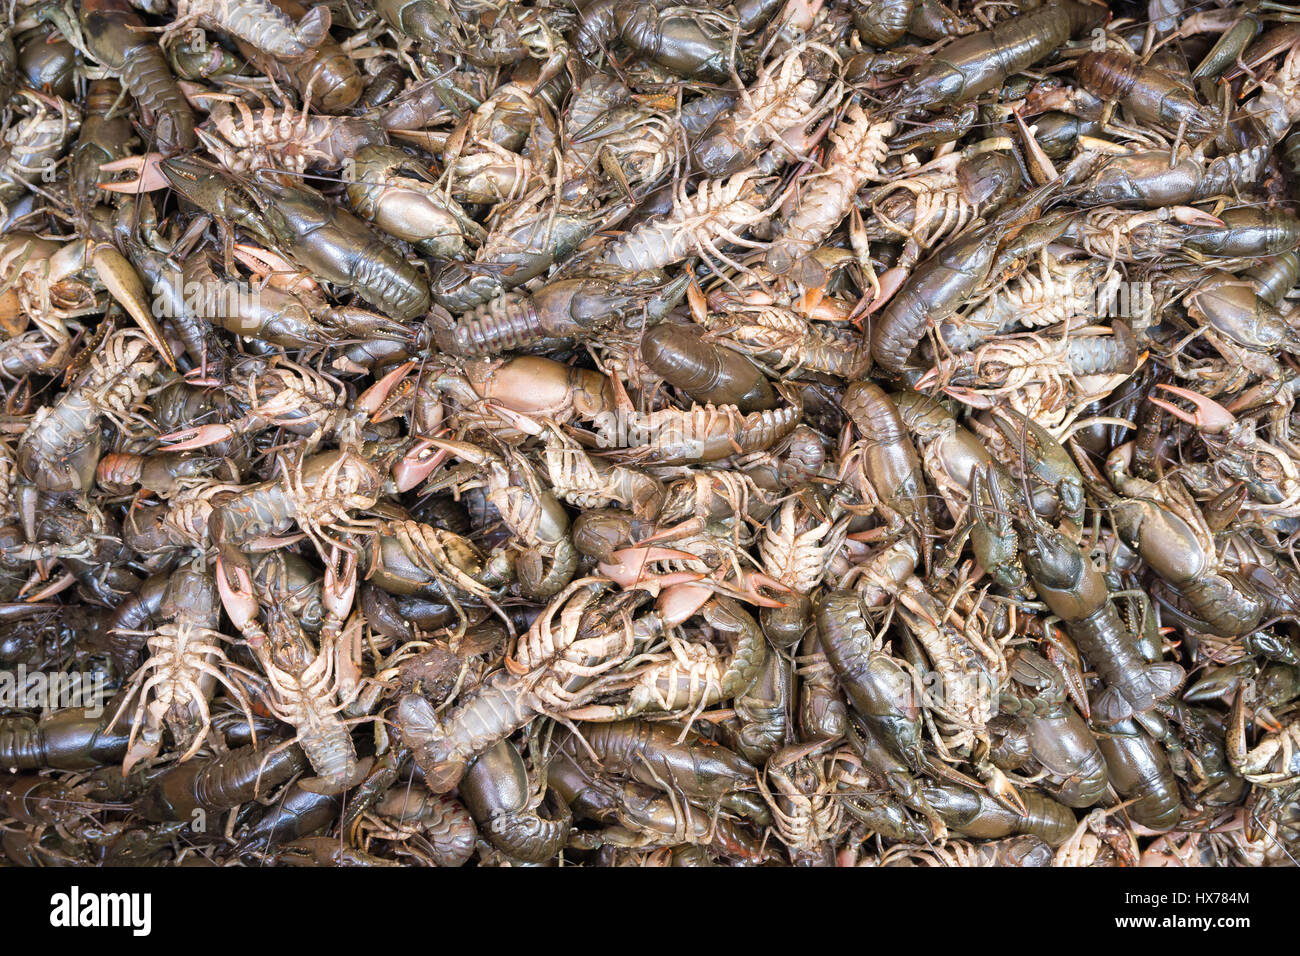 river crayfishes for background use - Stock Image